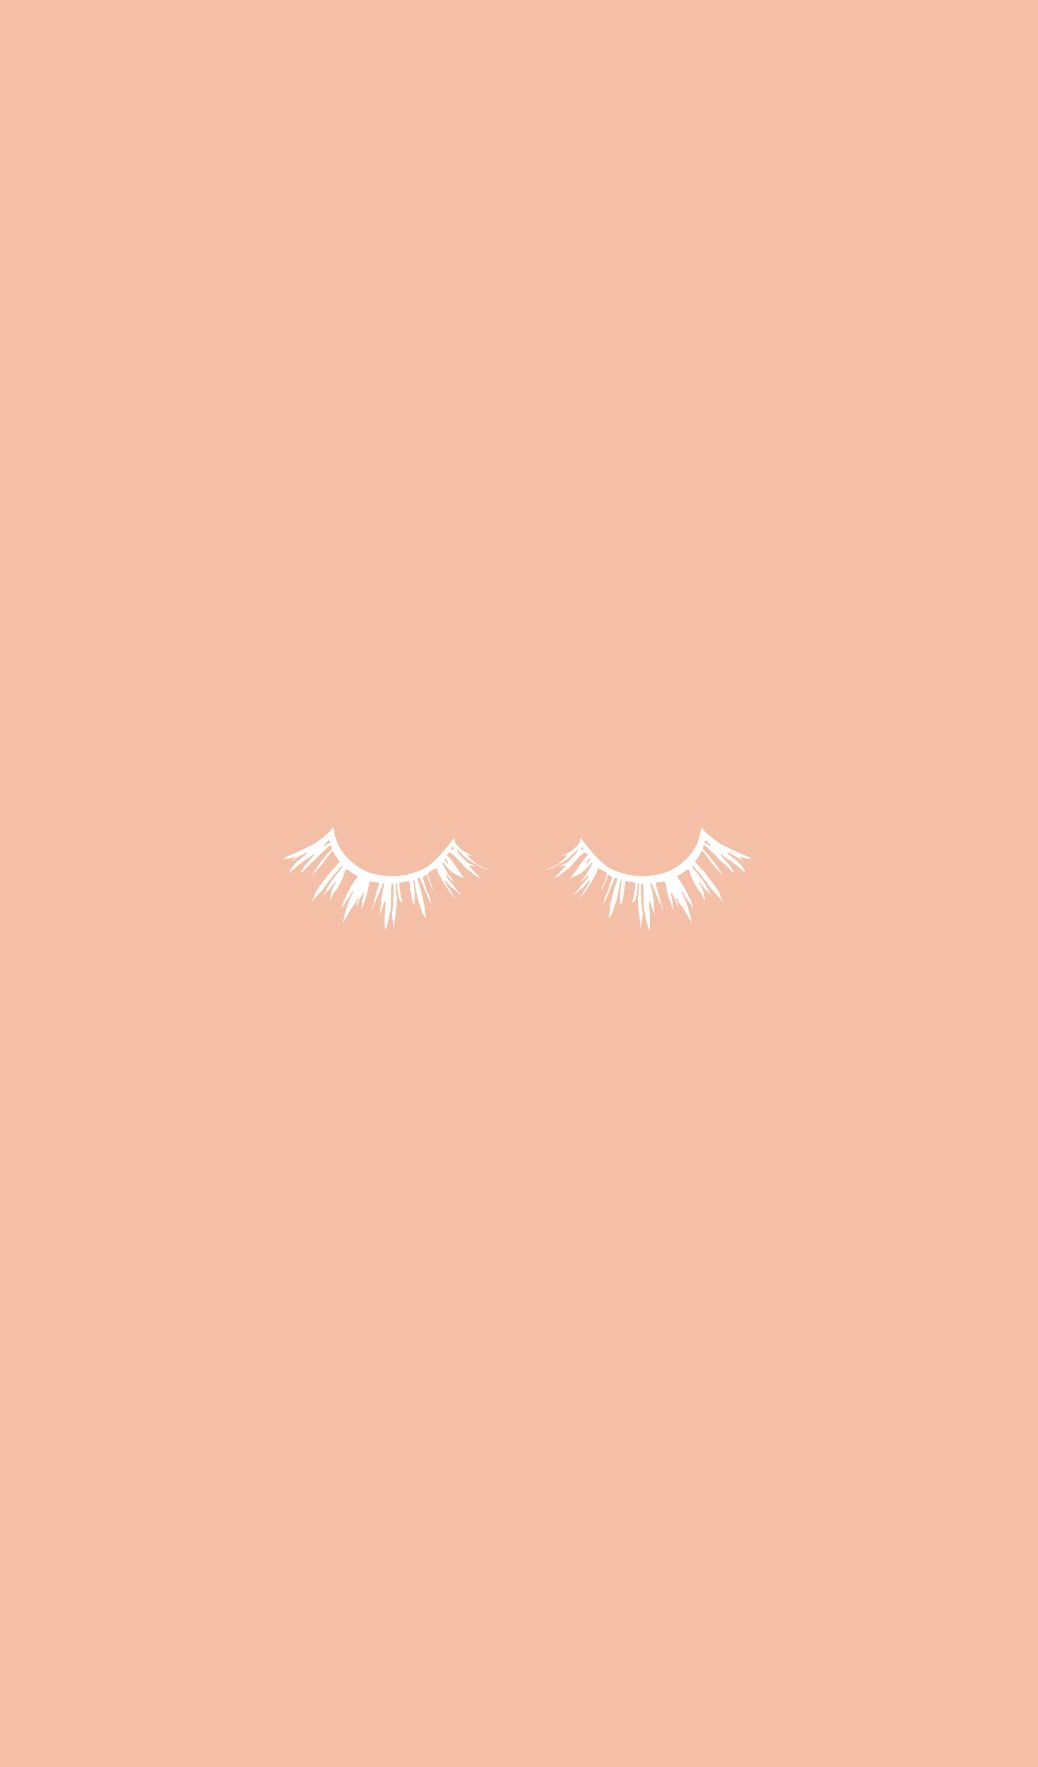 Pin By Sophie Eilean On P E A C H Y K E E N Instagram Highlight Icons Instagram Icons Pink Instagram